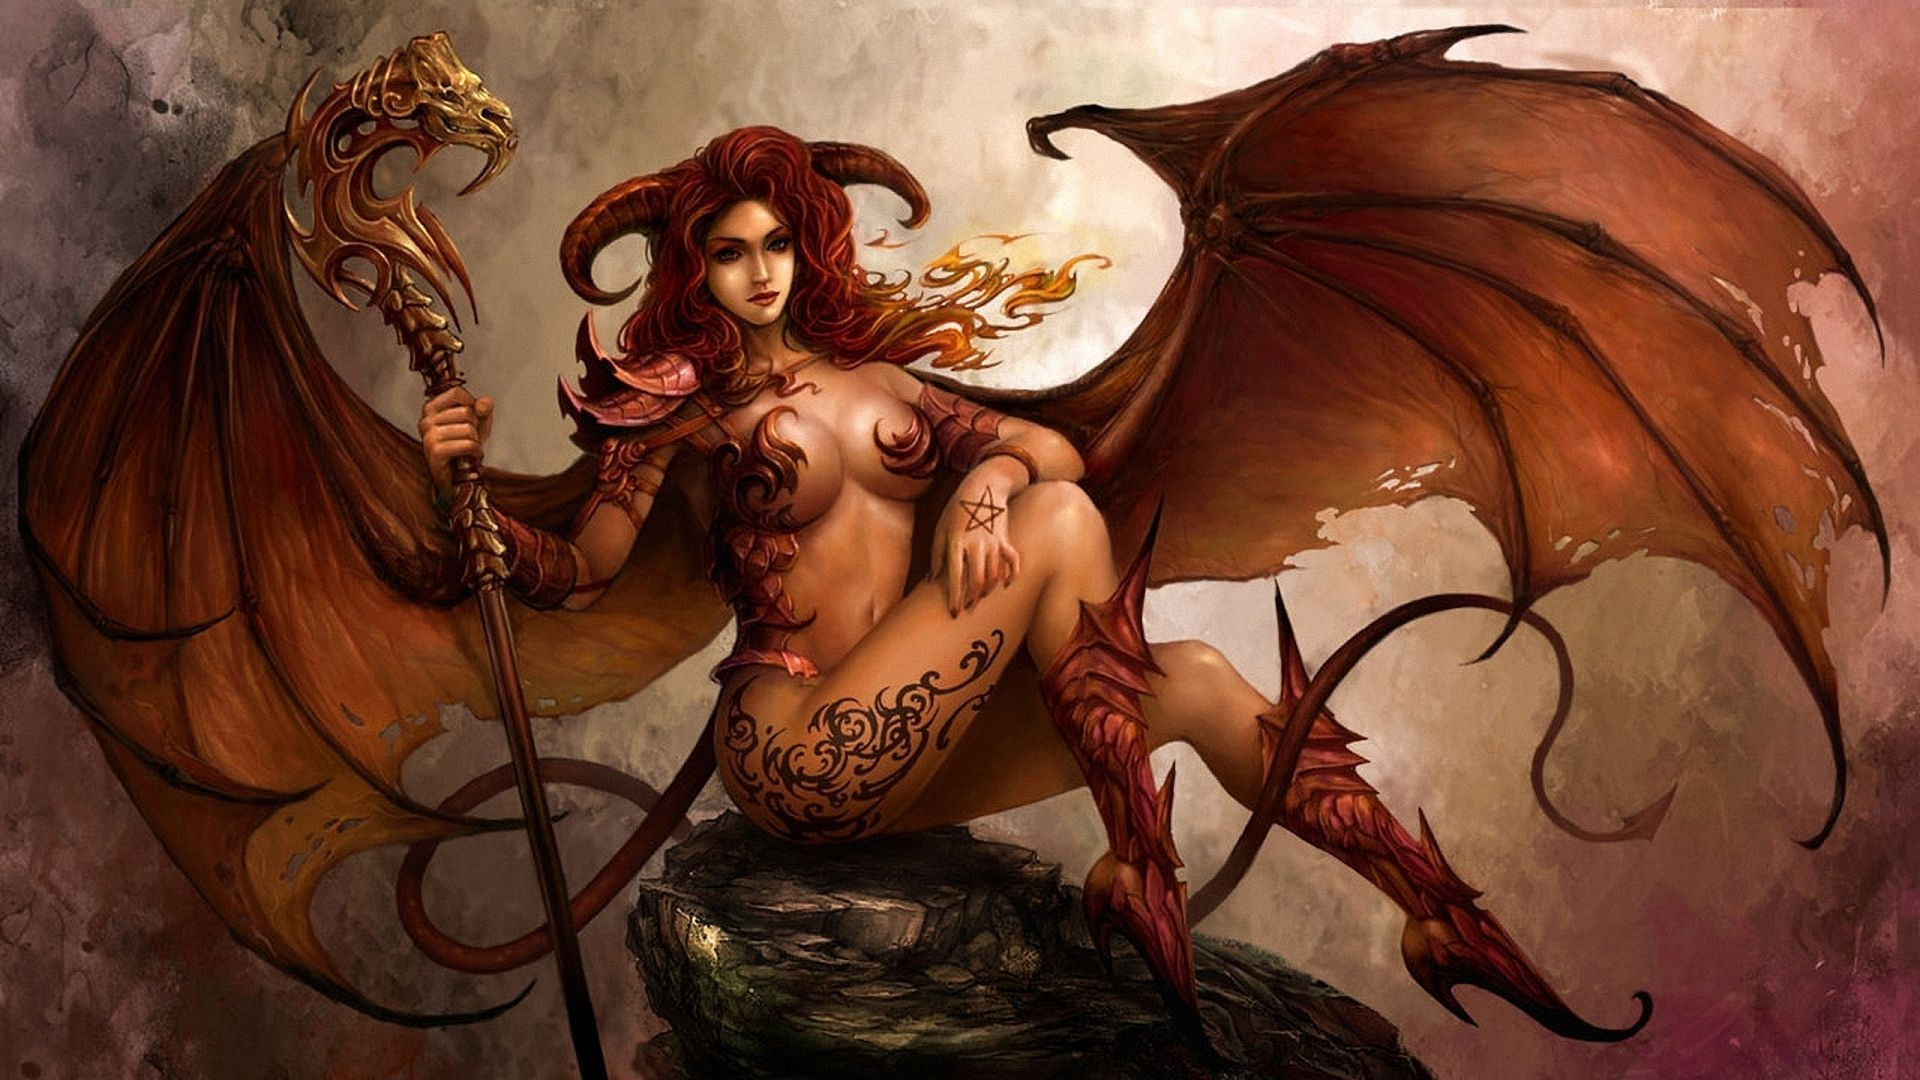 Angels and demons nude girls wallpaper erotic picture